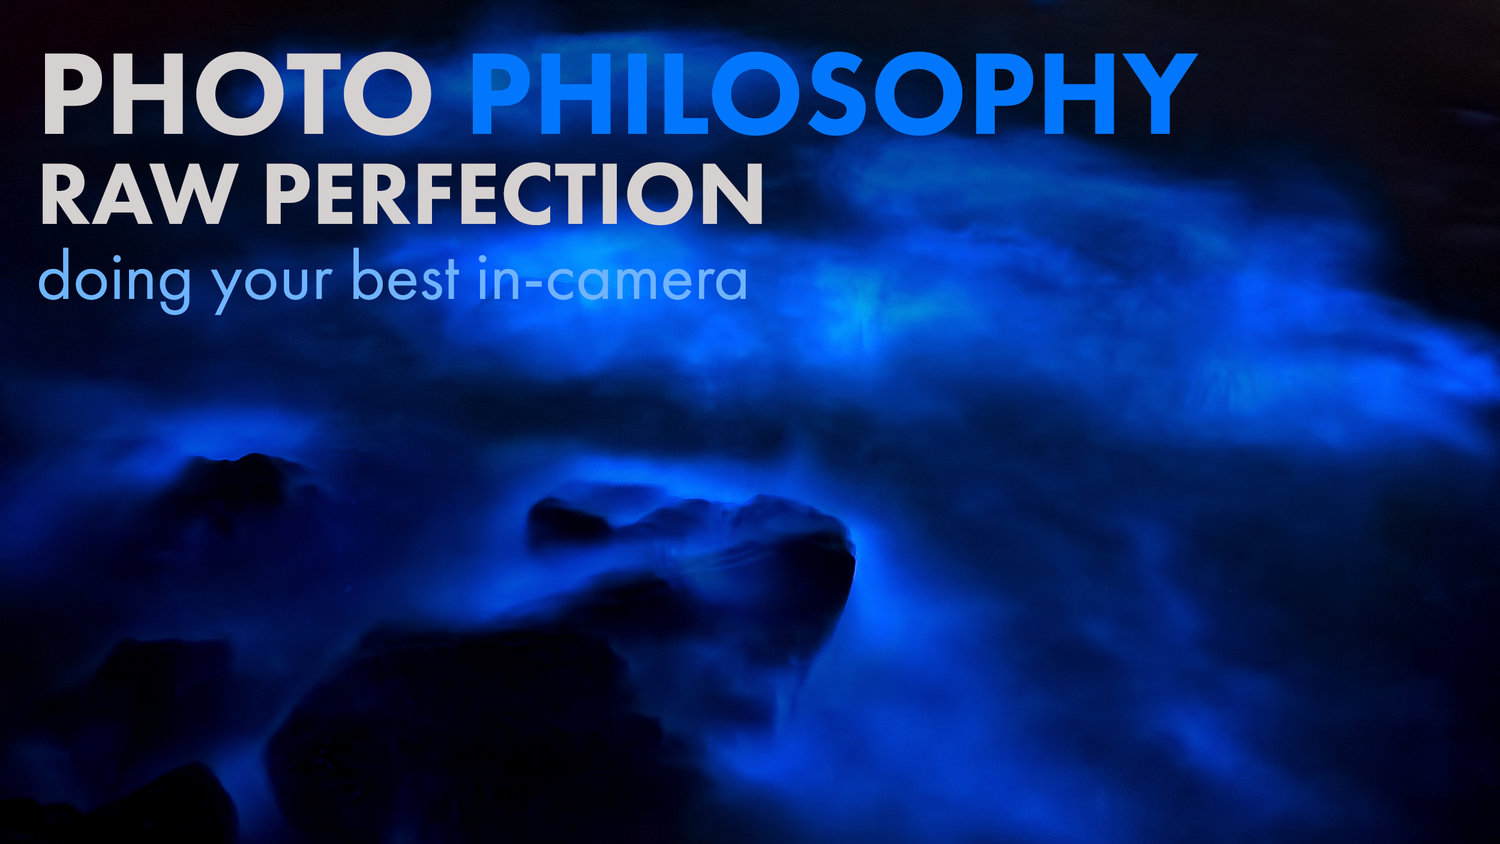 PHILOSOPHY   raw perfection, doing your best in-camera